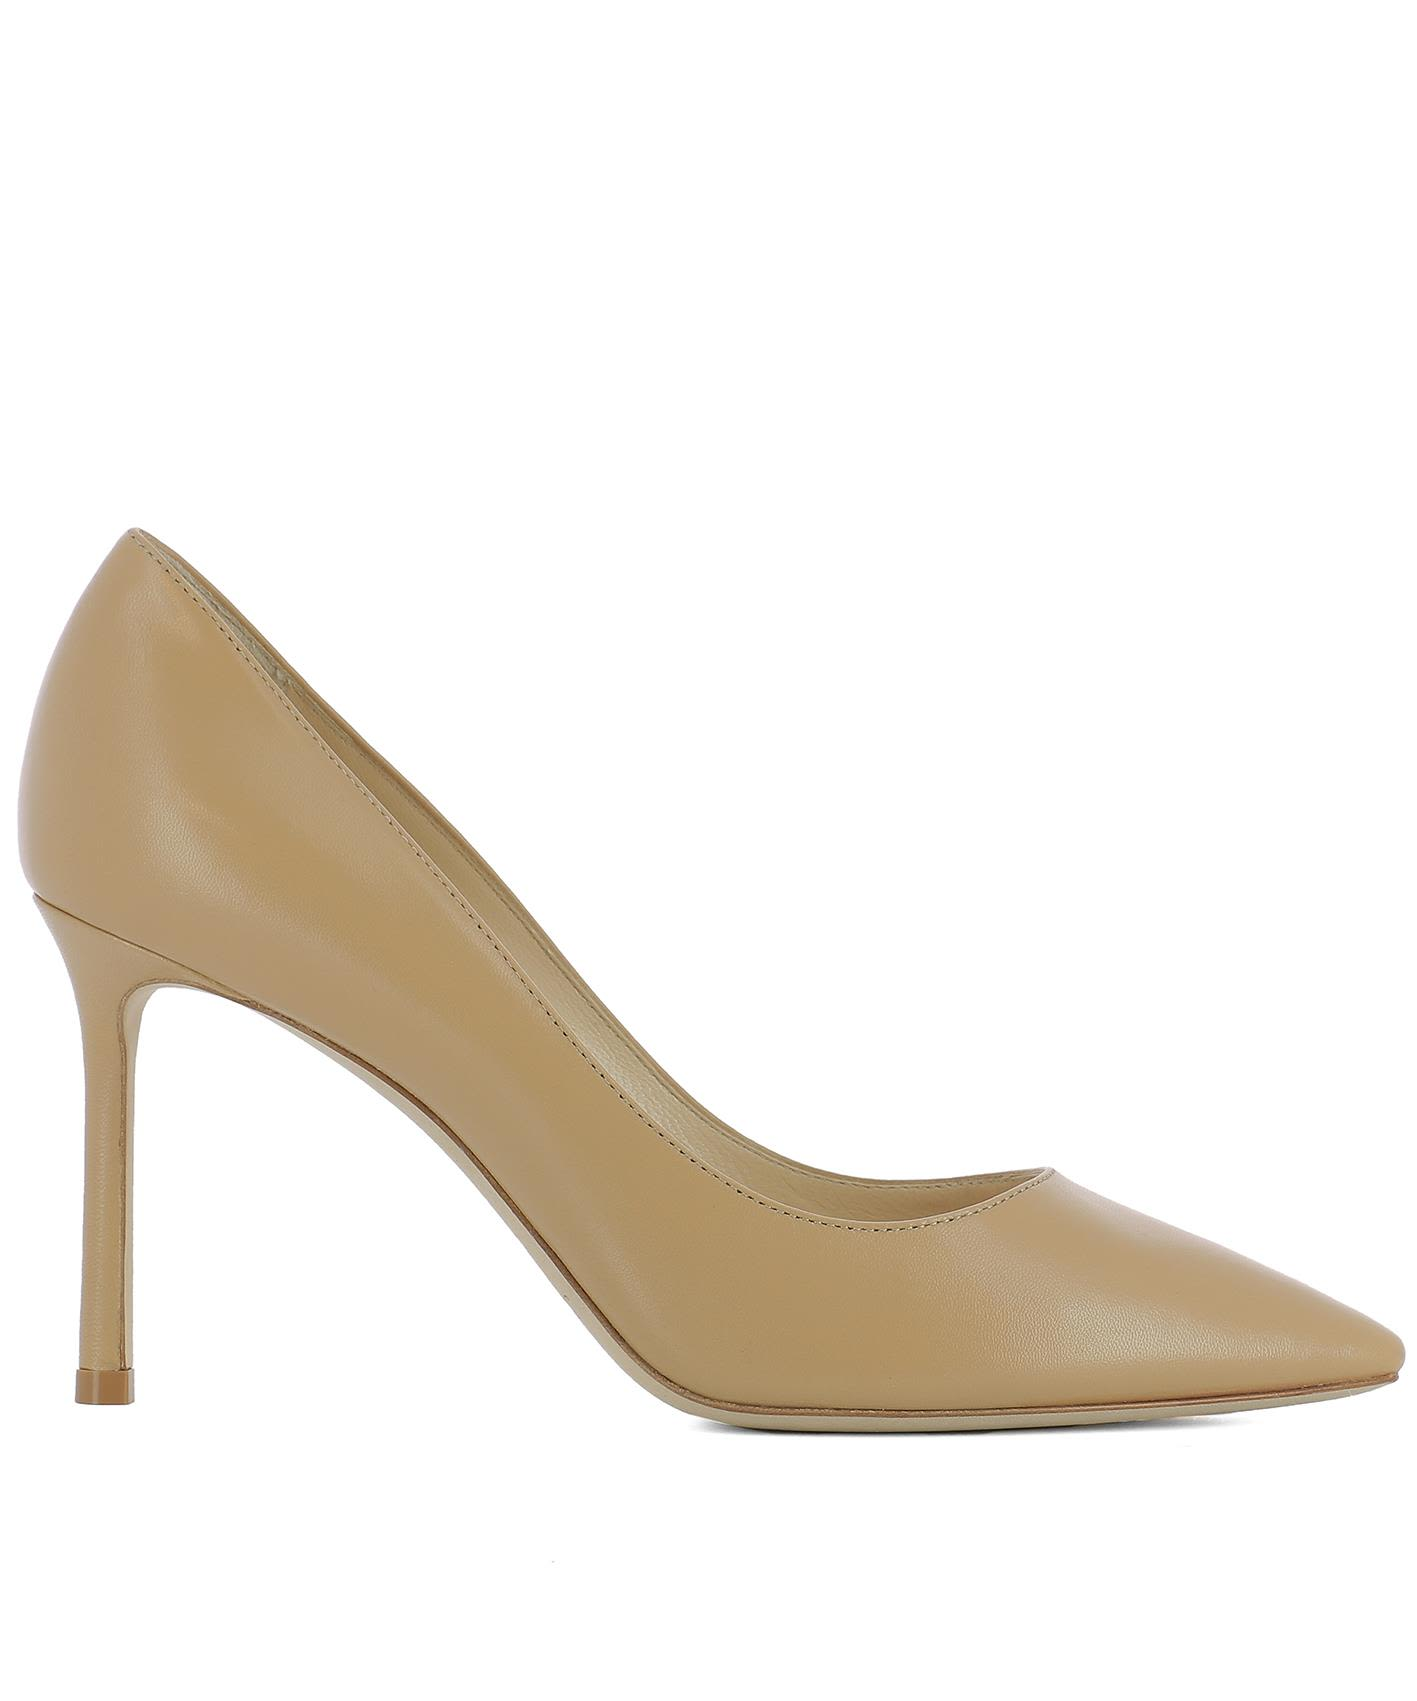 Beige Leather Romy 85 Pumps